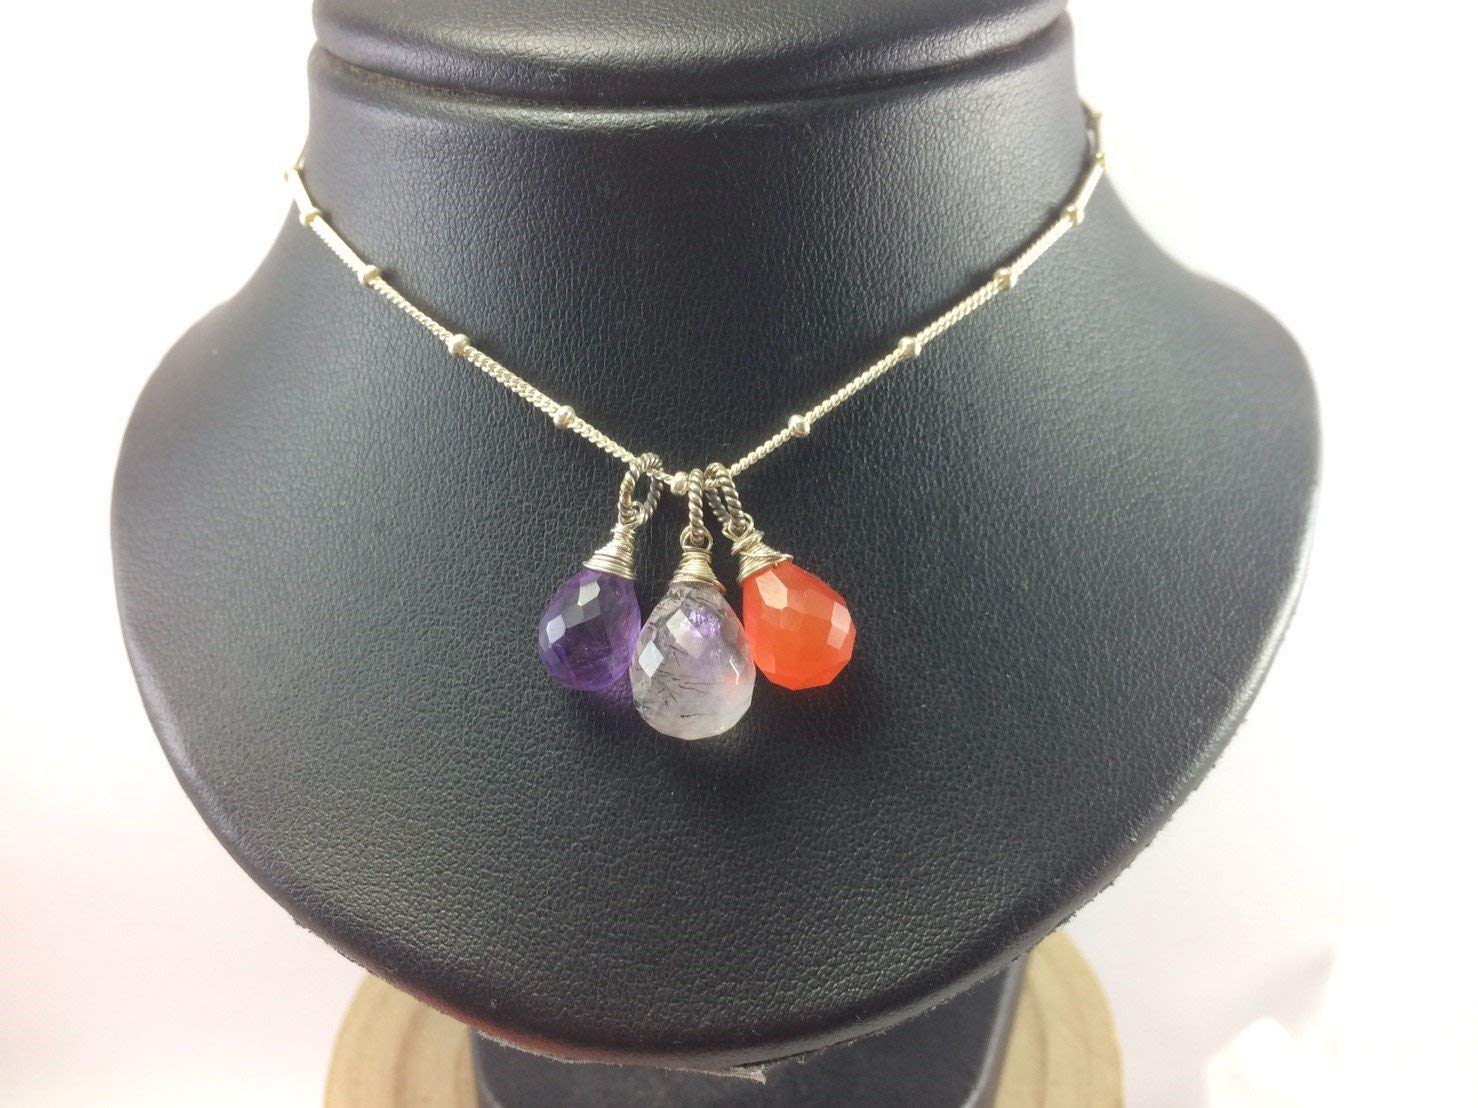 "Carnelian Pendant Necklace,Amethyst Pendant Necklace,Black Rutilated Quartz Pendant Necklace,Satellite chain necklace,925 Sterling Silver Chain Extender 1 inch,Size 14"",16"",18"""